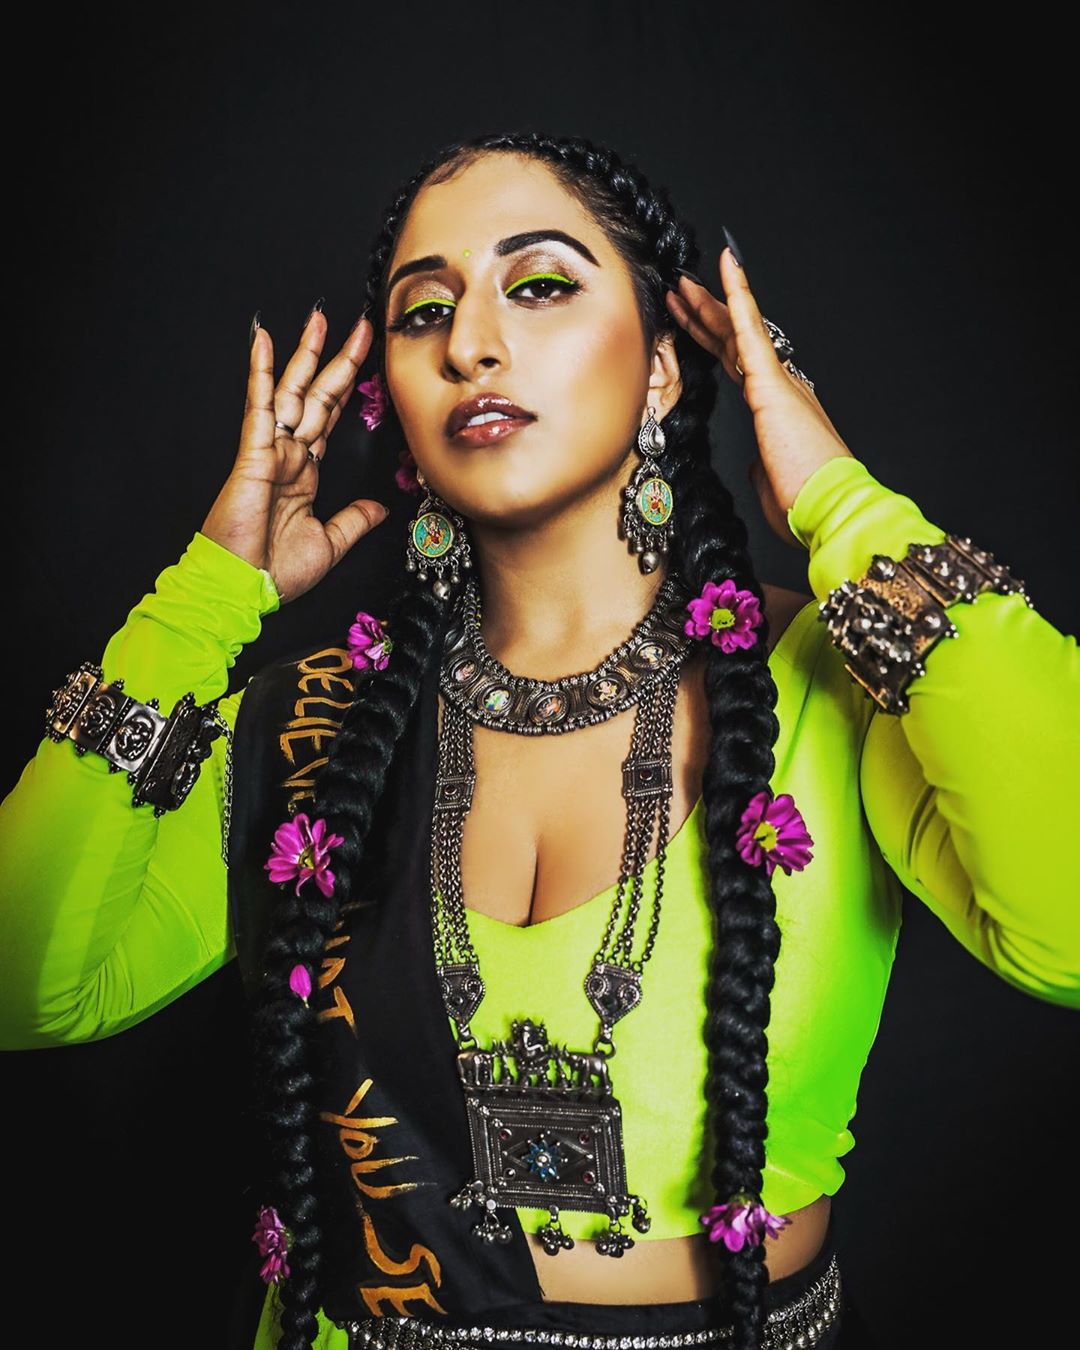 American Music Awards to get a desi twist as Raja Kumari becomes first 'Indian American' to host